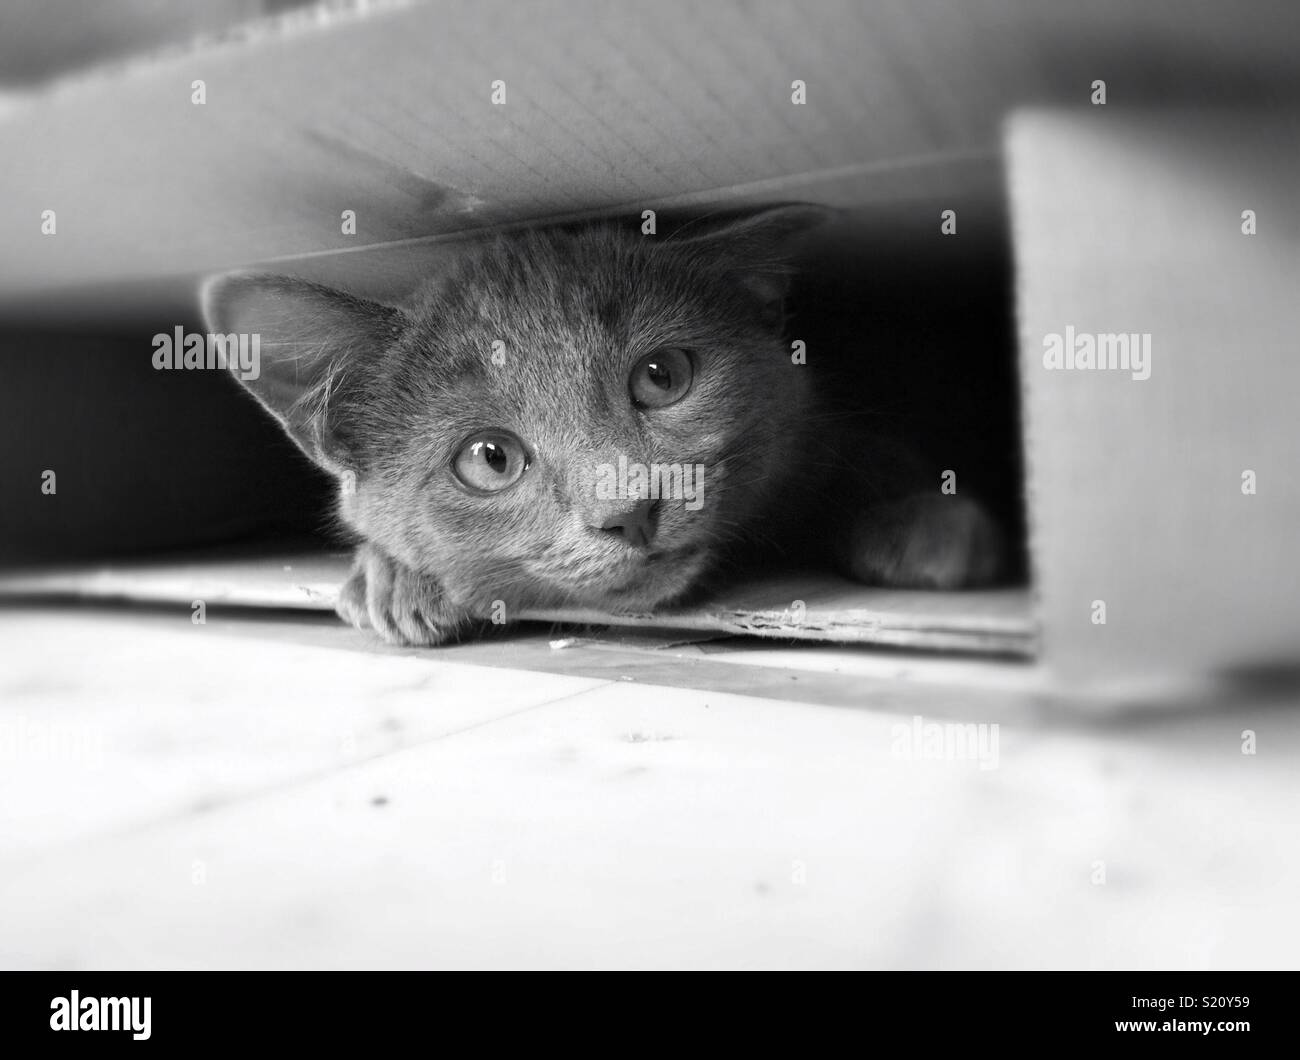 Cat hiding in a box - Stock Image